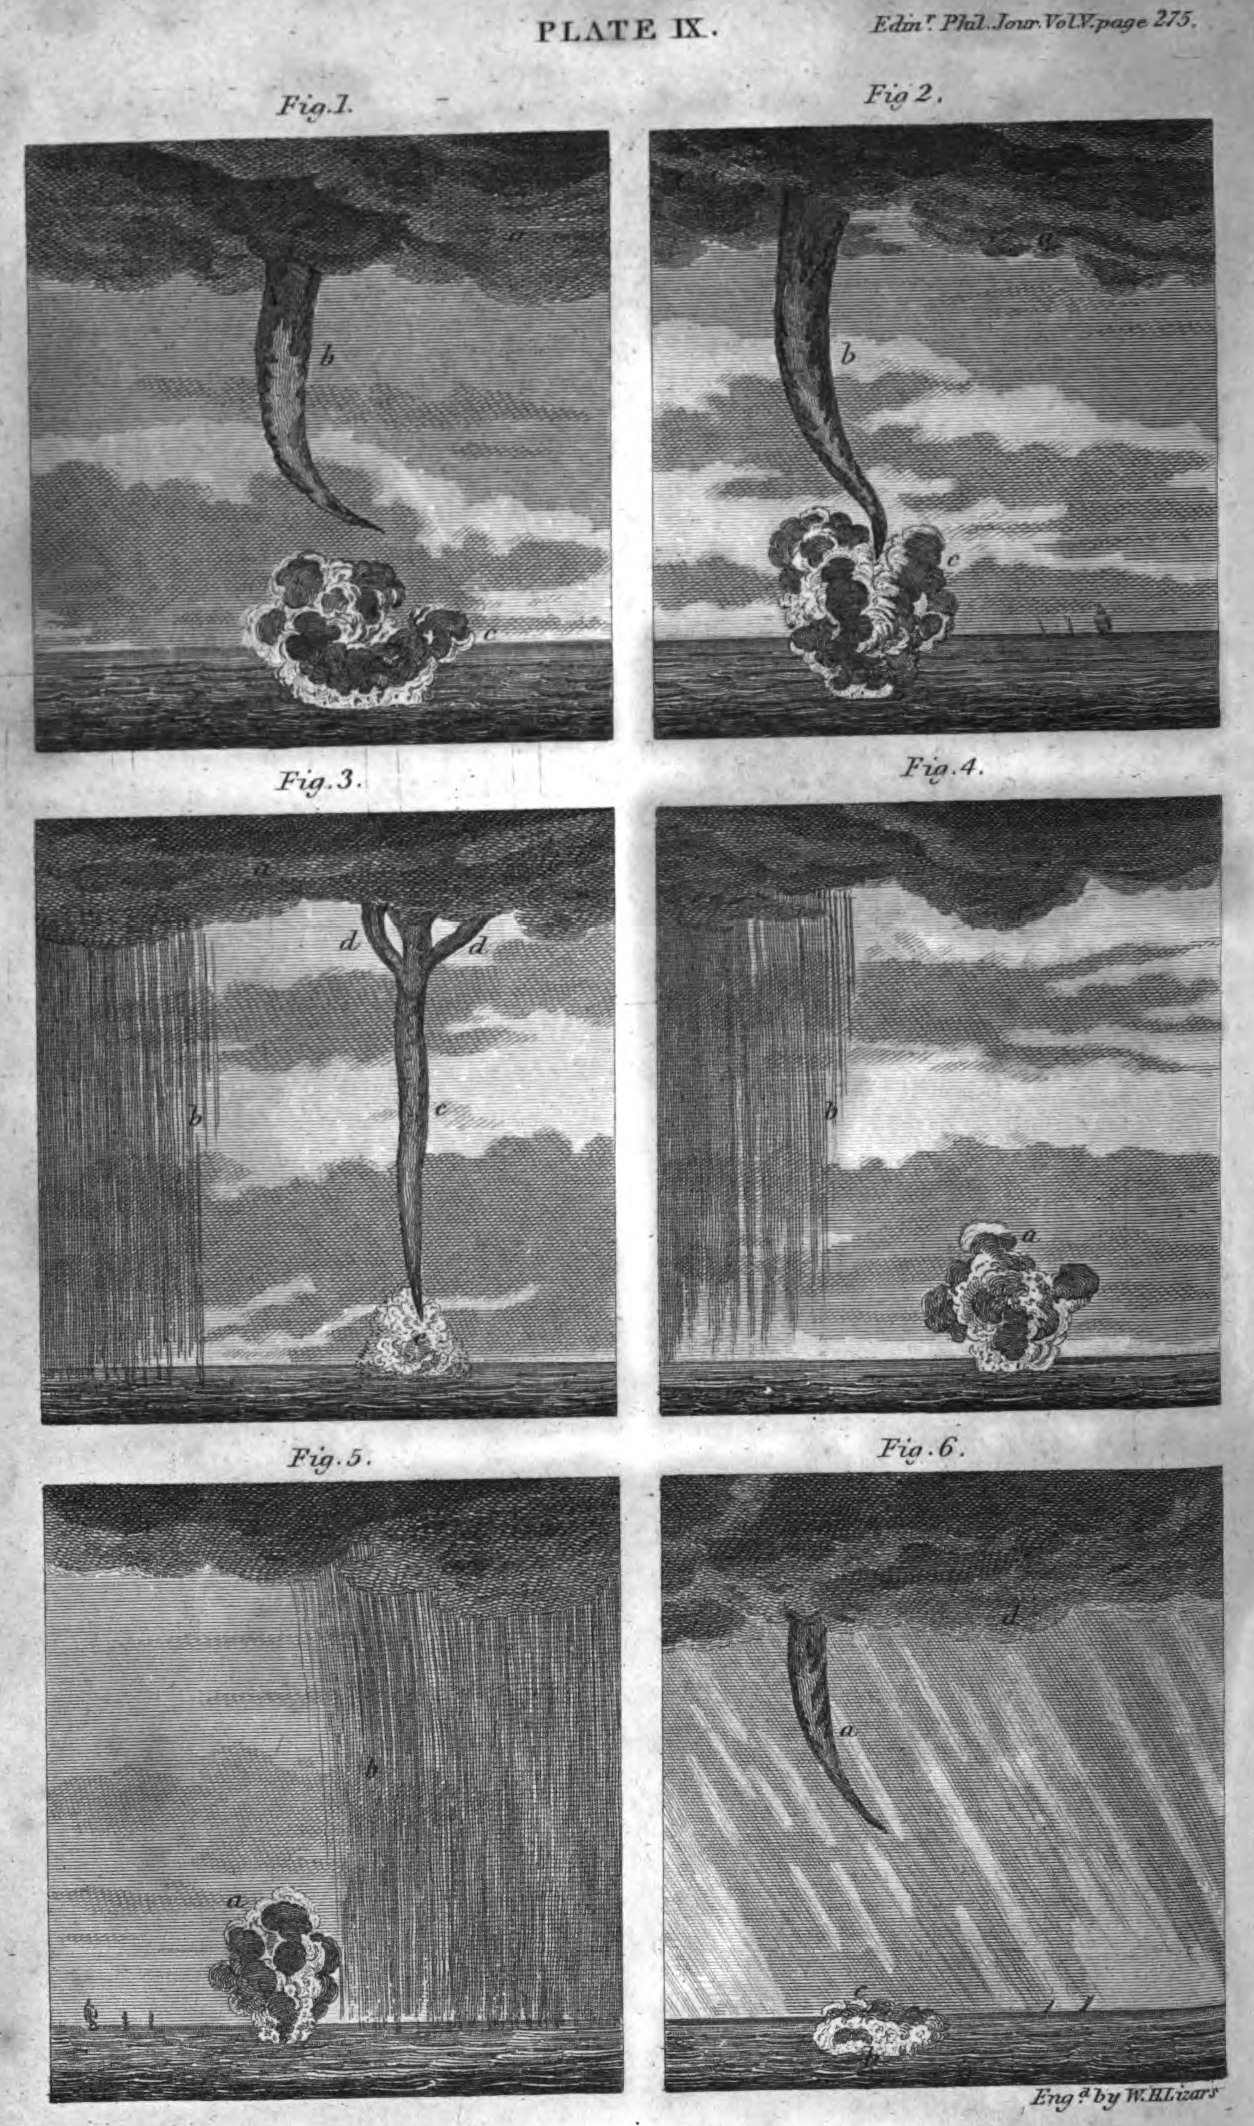 "Waterspouts observed on 24 May 1788 (Figs. 1 and 2), 8 January 1789 (Figs. 3 and 4) and 12 April 1789 (Figs. 5 and 6) by  Francis Buchanan  (1762–1829) a Scottish physician, geographer, zoologist and botanist, during his voyages to India.   Waterspout on 24 May 1788  ""[...] I observed a curve spout come from the cloud, as shown in Plate IX. Fig. 1.  b , the concavity of the curve being windward. At the same time, or at the next moment after observing the spout, I perceived a thick cloud or fog arise from the sea,  c . Very soon afterwards, the spout rushed down and joined the cloud, which had risen from the se; and, at the same time, thin rose higher, and contracted its diameter, as in Fig. 2.  The water spout being now completely formed, the appearance of it was as follows: The cloud  a , from which the spout descended, moved slowly along, and probably, by this means, produced the curvature in the spout. The body of the spout  b , tapered gradually downwards,  and was seemingly more dense than the cloud from which it descended, but not more dense or black than cloud often are. The fog coming form the sea was of the same colour as the spout, and resemble the smoke of a steam-engine. During the whole time, the surface of the sea under the spout was evidently in violent agitation, and full of white waves; at the same time noise was heard, like that of an immense waterfall. From the formation of the spout, till the time it reached the cloud arising from the sea, appeared to be about two minutes. The spout then began to withdraw itself into the cloud, from whence it had descended; while the cloud bellow gradually withdrew into the sea; and in about three minutes all was over, and the thick cloud in the sky, in a short time, was entirely dispersed. "" (Buchanan 1821, p. 275 –  276).  Waterspout on 8 January 1789  ""[...] at half-part eight in the morning, we observed like a thick cloud resting on the sea, Fig. 4.  a , and bearing from us from W. by N. from four to six miles distance. [...] To the southward of it was a heavy rain,  b . [...] A spout then came down from the cloud in the form of an elbow; but before he gave me notice, the spout had disappeared, and nothing remained except the cloud on the water.  About half an hour afterwards I was informed, that the spout has returned. Upon coming on deck, I observed the cloud Fig. 3.  a , and the rain  b  as before; and a new spout was then formed, where the former has been. The spout  c  was cylindrical, and slightly bent by the wind to the north. Below it terminated in a point about 300 feet from the sea; above it was suspended from the cloud, but became rather narrower, having sent off two branches  d ,  d . It was every where of a define form, and much of the same density with the cloud. In looking at it with a glass, I at first took it to be hollow; but I soon discovered, that this was owing to the middle appearing lighter than the sides, as it must do from the known laws of optics. From the sea arose a circumscribed conical cloud  e , nearly of the same density with the spout. After continuing about then minutes by a watch, the spout and both clouds became gradually lighter coloured, till they entirely disappeared."" (Buchanan 1821, p. 277).   source: Buchanan, F., 1821: Account of Water-Spouts observed at Sea on Voyages to and from India. The Endinburgh Philosophical Journal,  5 , 275 – 279. ( courtesy of Google books )."